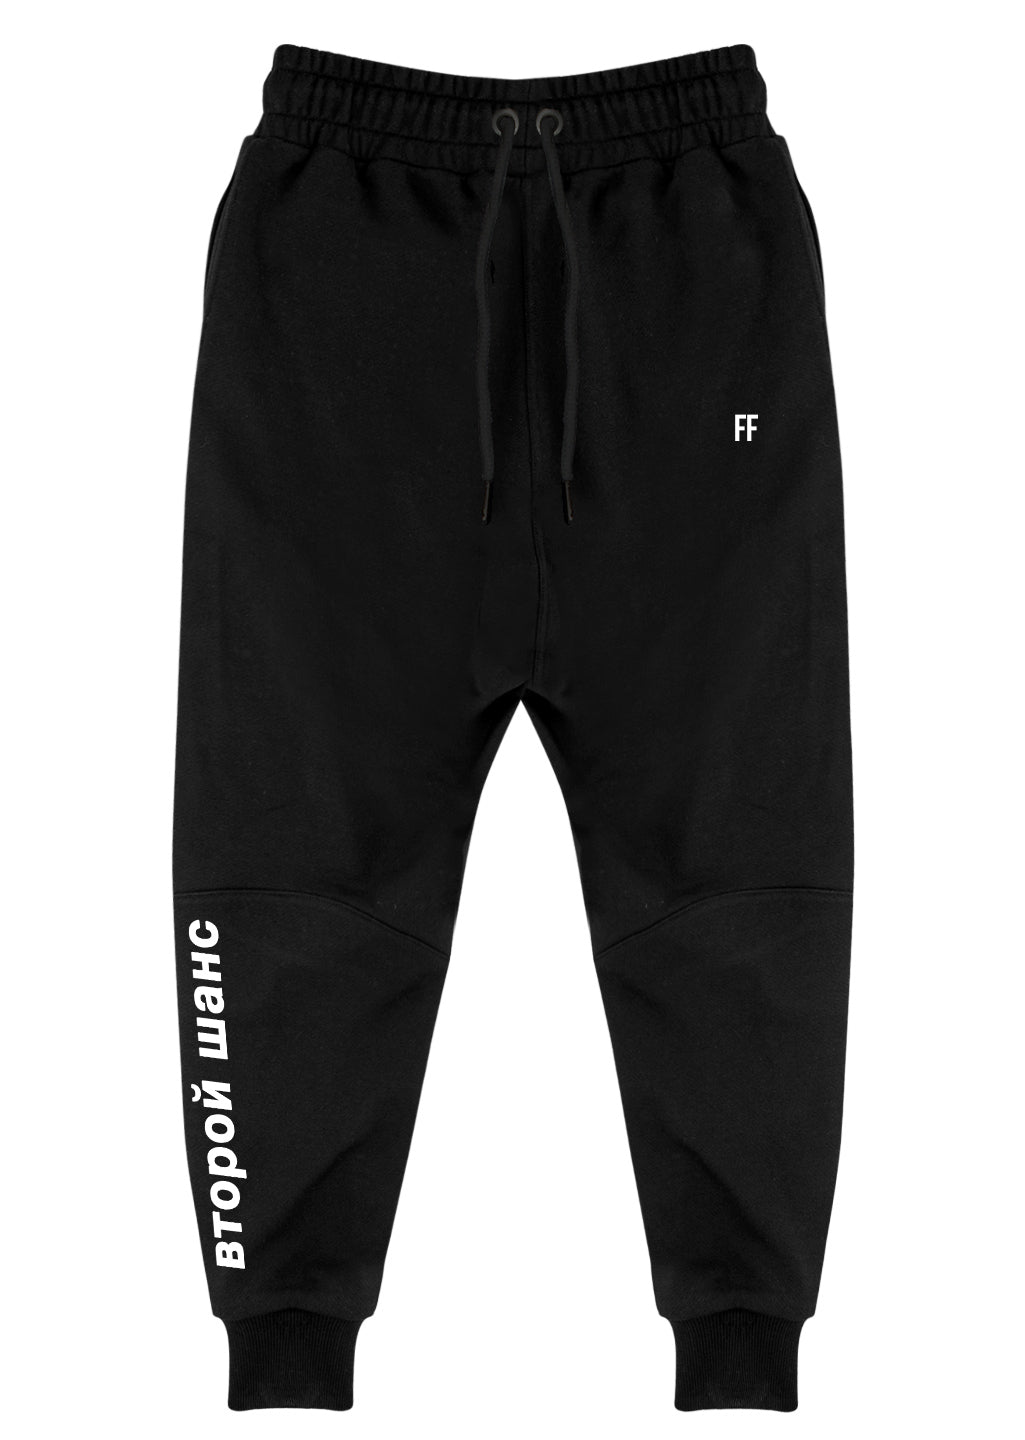 Second Chance / Unisex Sweatpant